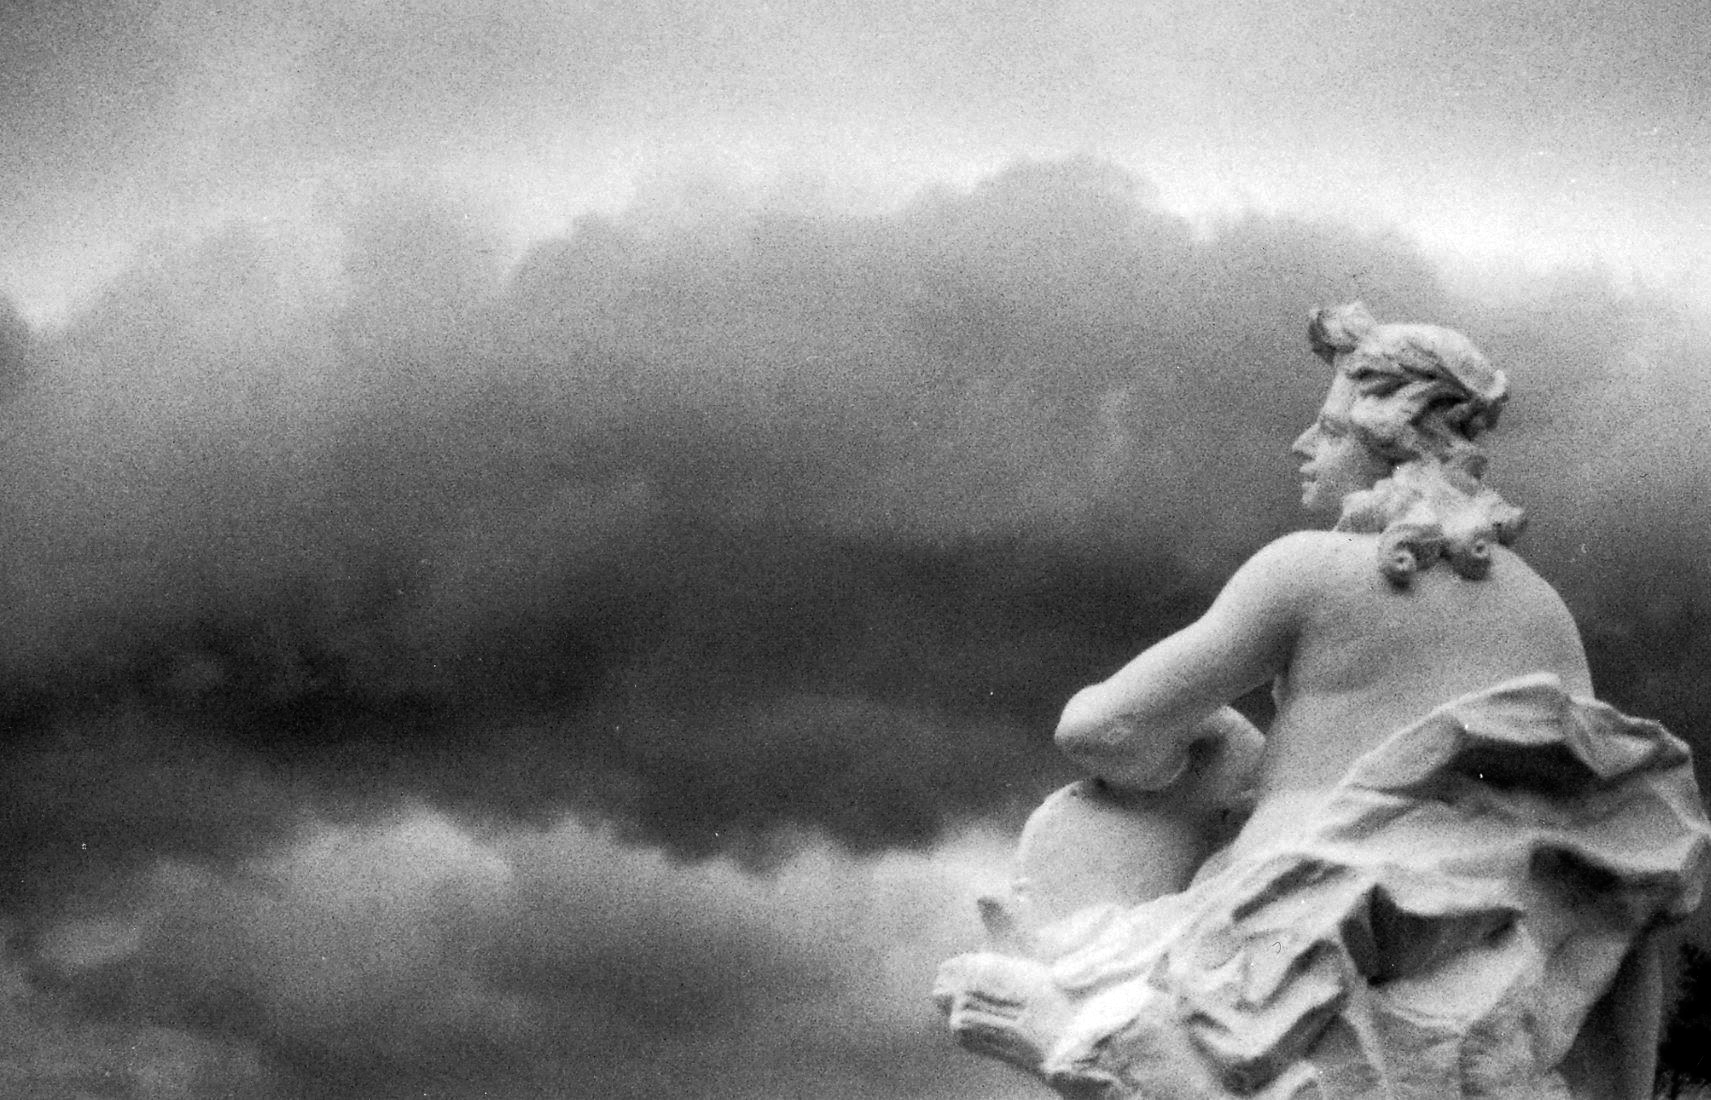 A statue of a person with flowing hair sits, gracefully looking over from right to left. The background depicts a texture of greyish clouds.